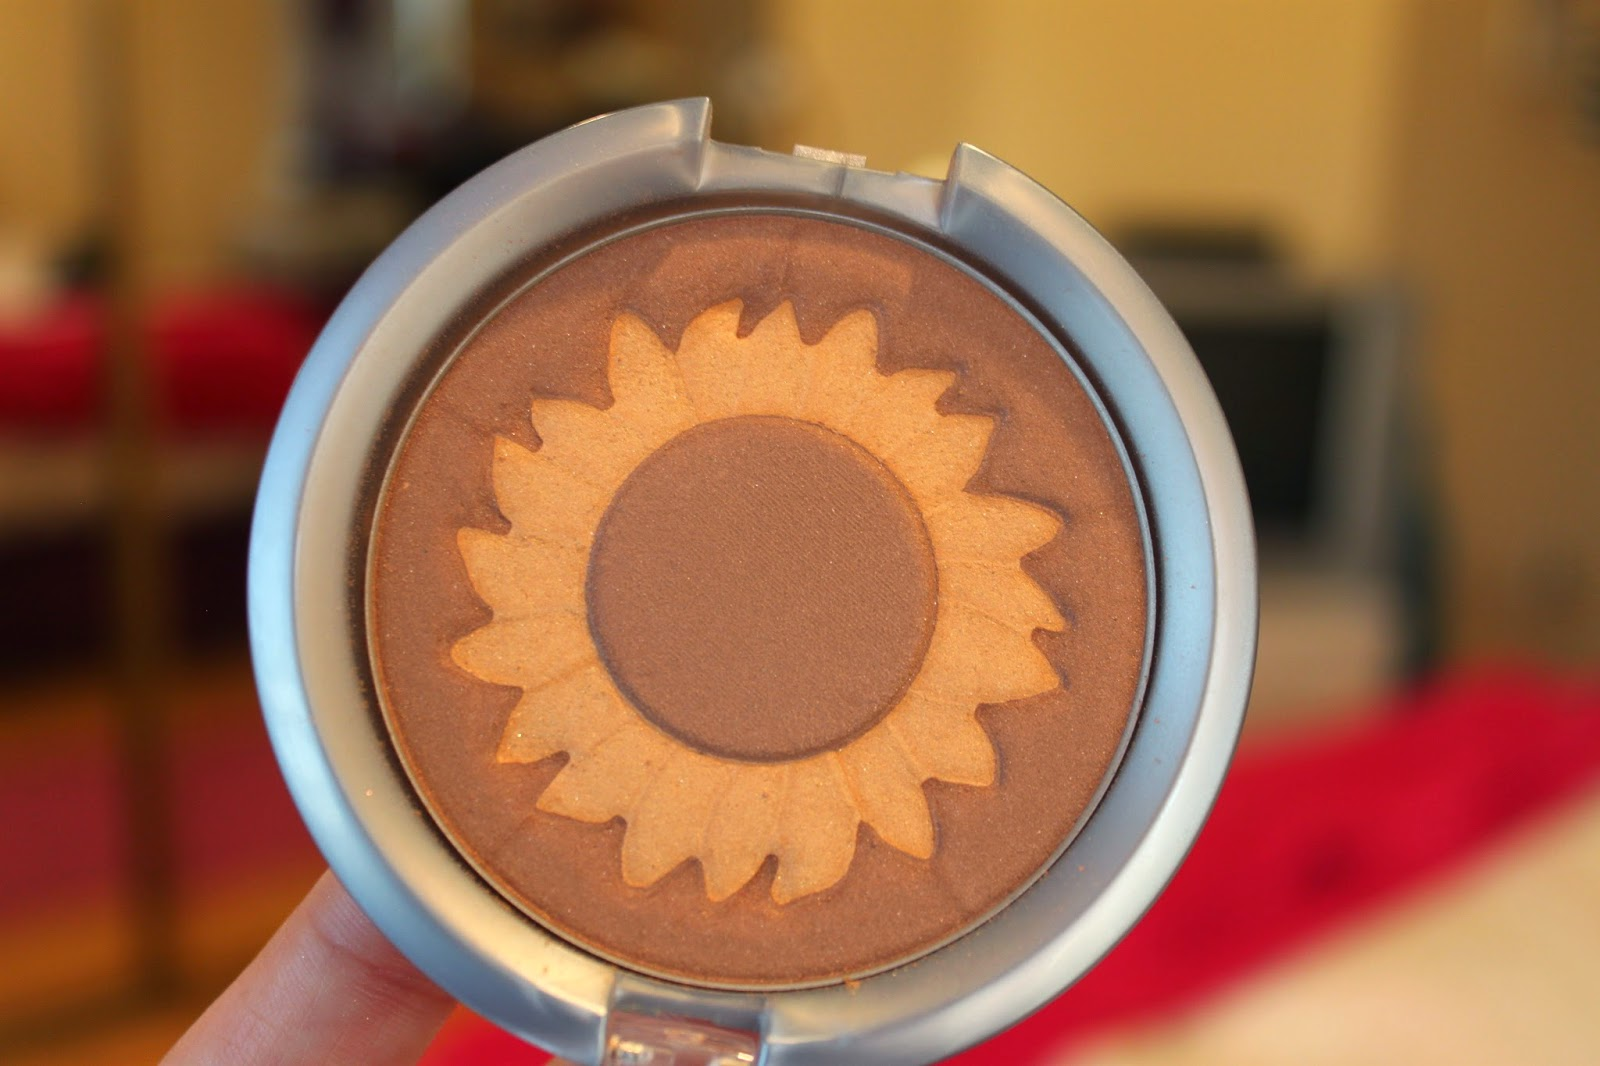 The beauty breakdown bronzer air brushing boosting booster happy glow organic